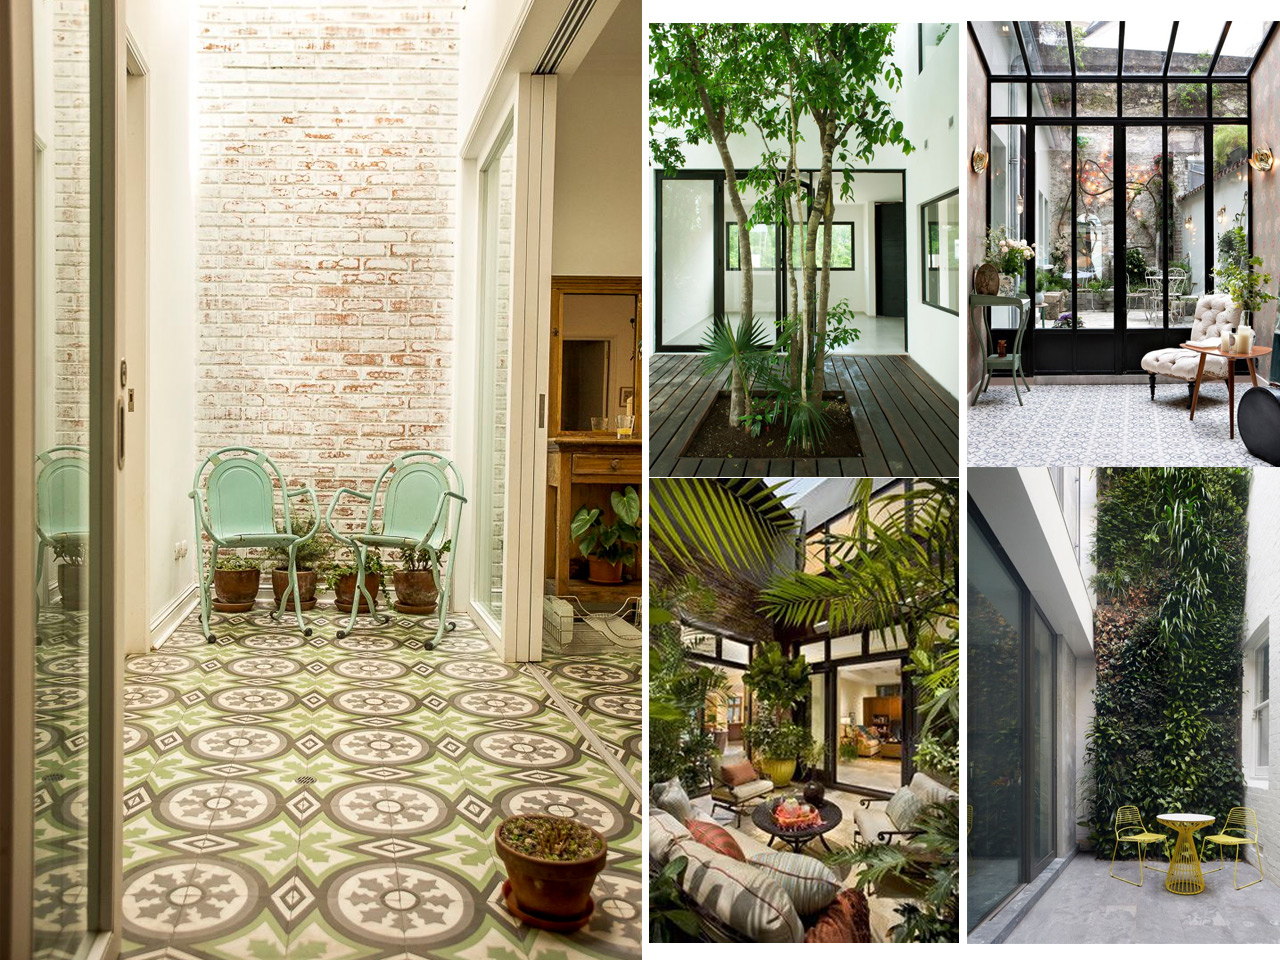 Tus 7 inspiraciones de decoraci n de terrazas interiores - Patio interior decoracion ...